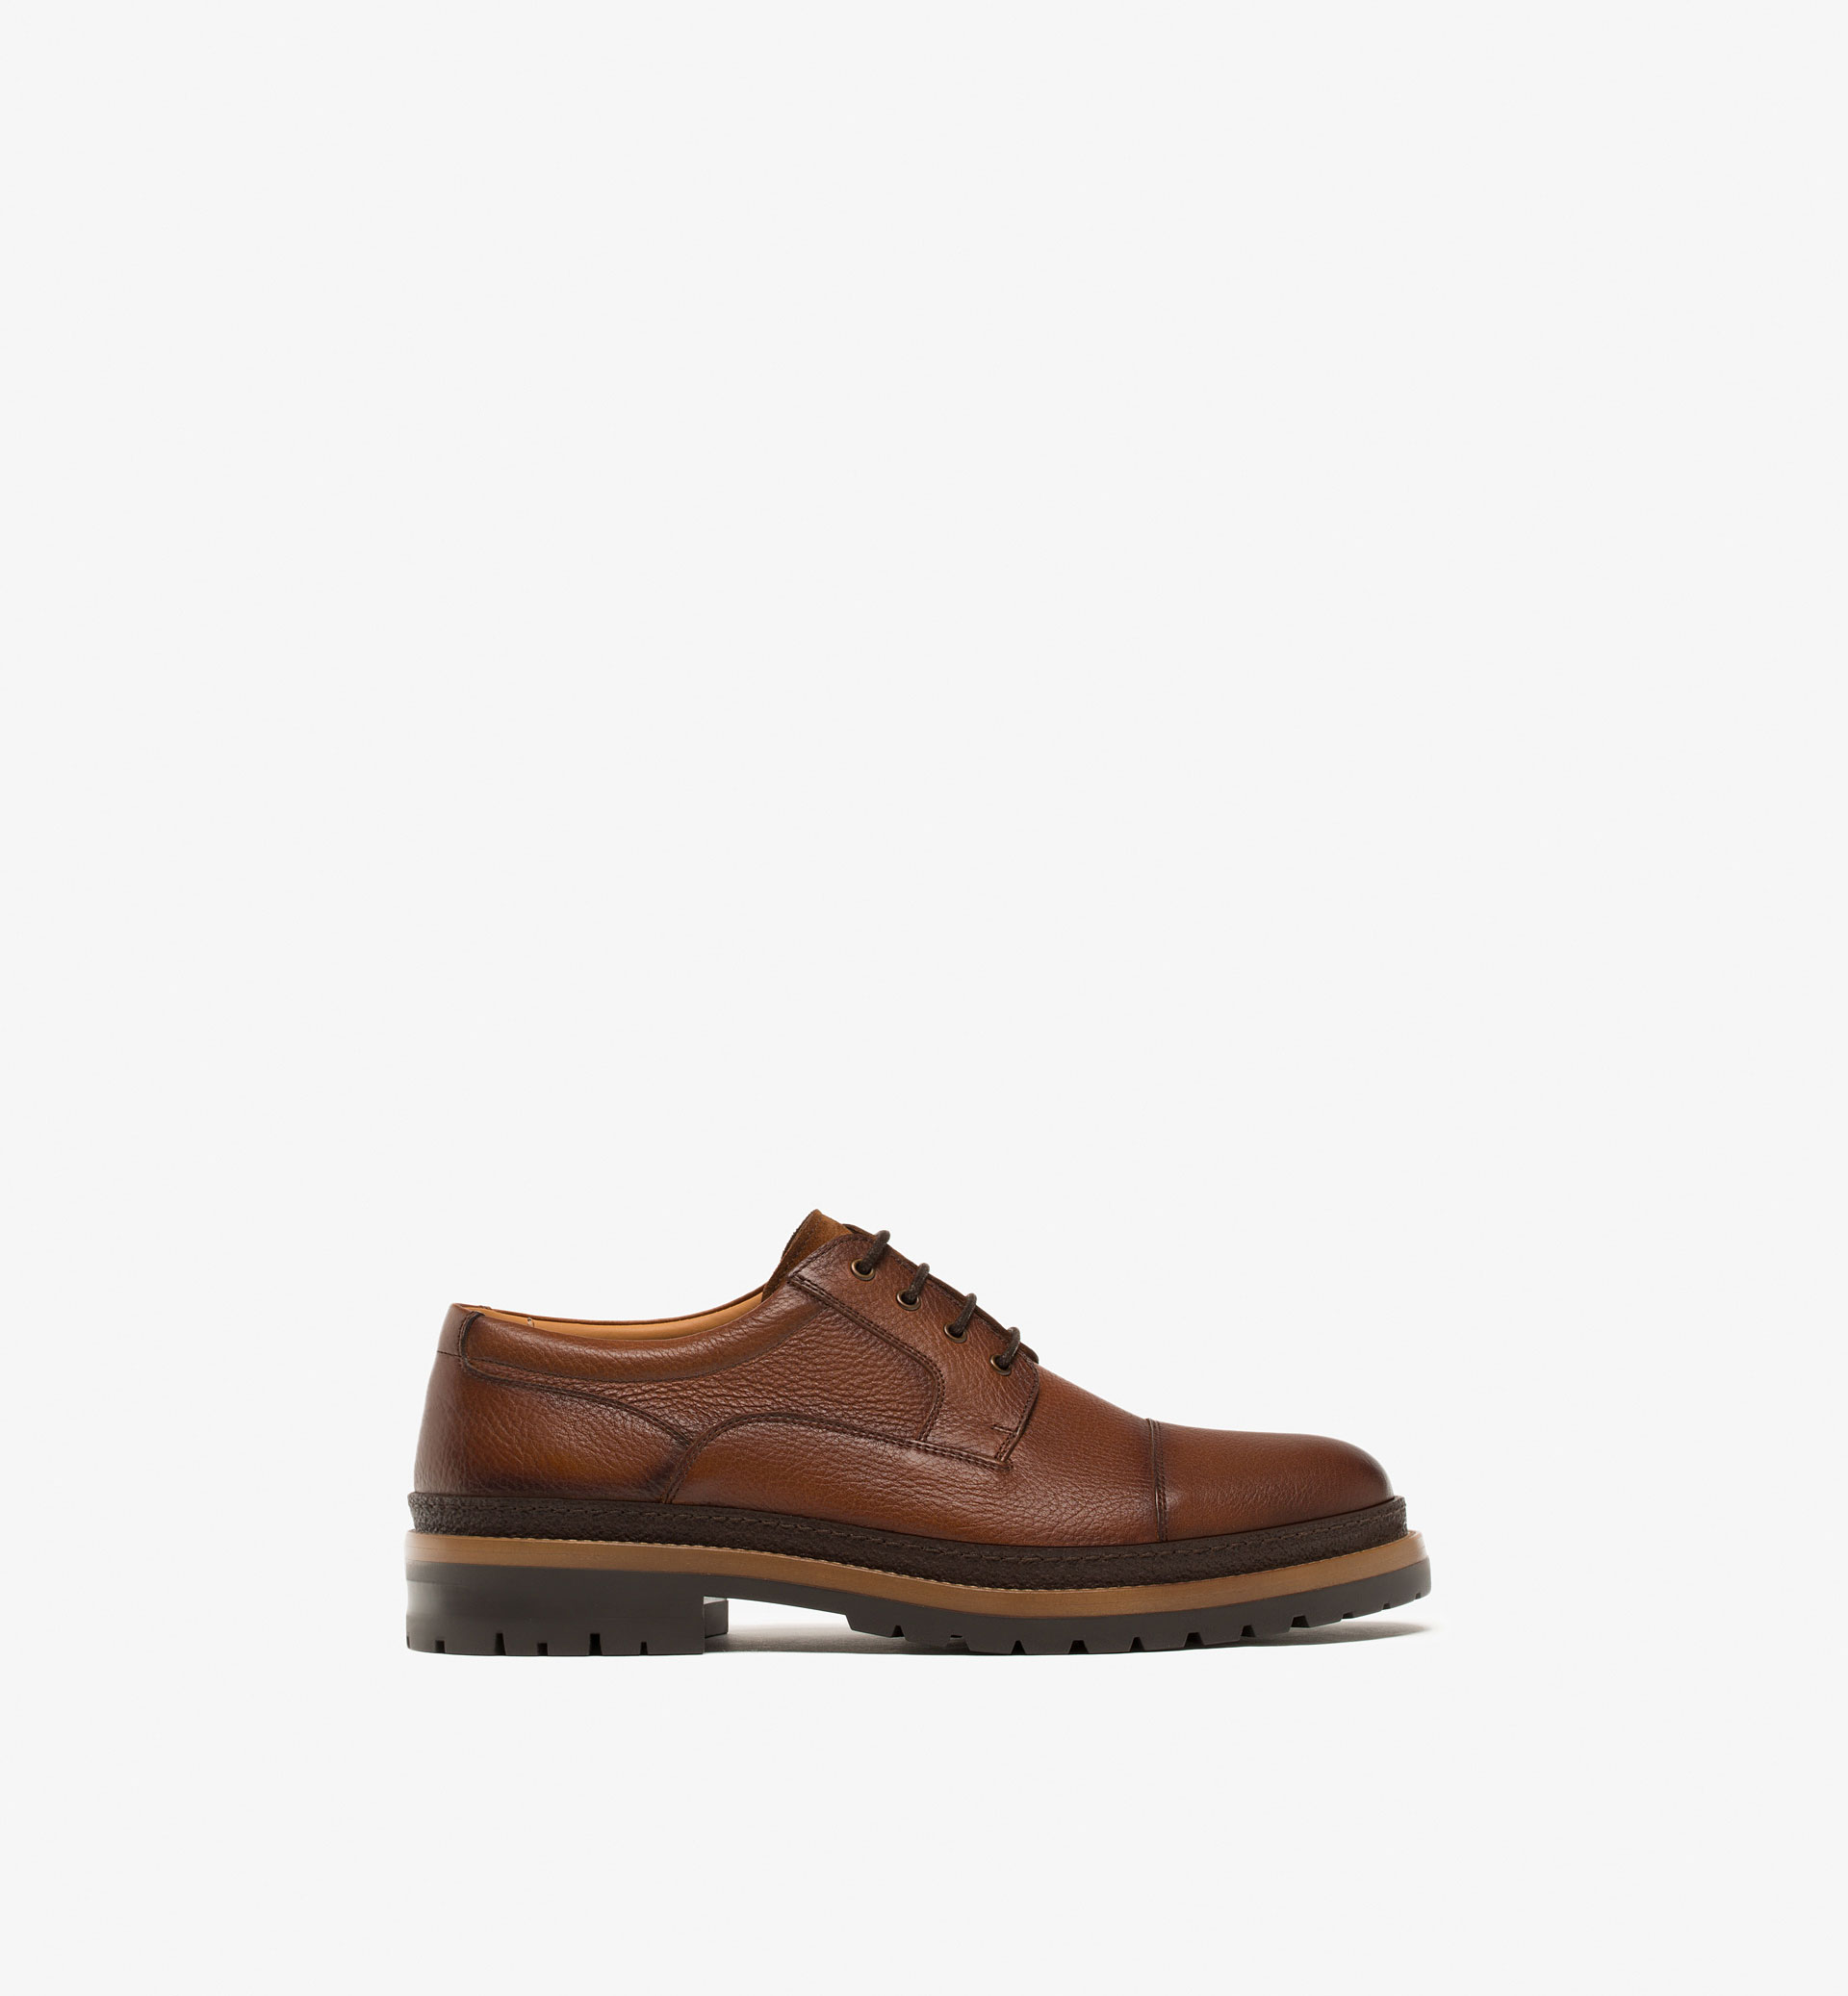 NAPPA LEATHER SHOES